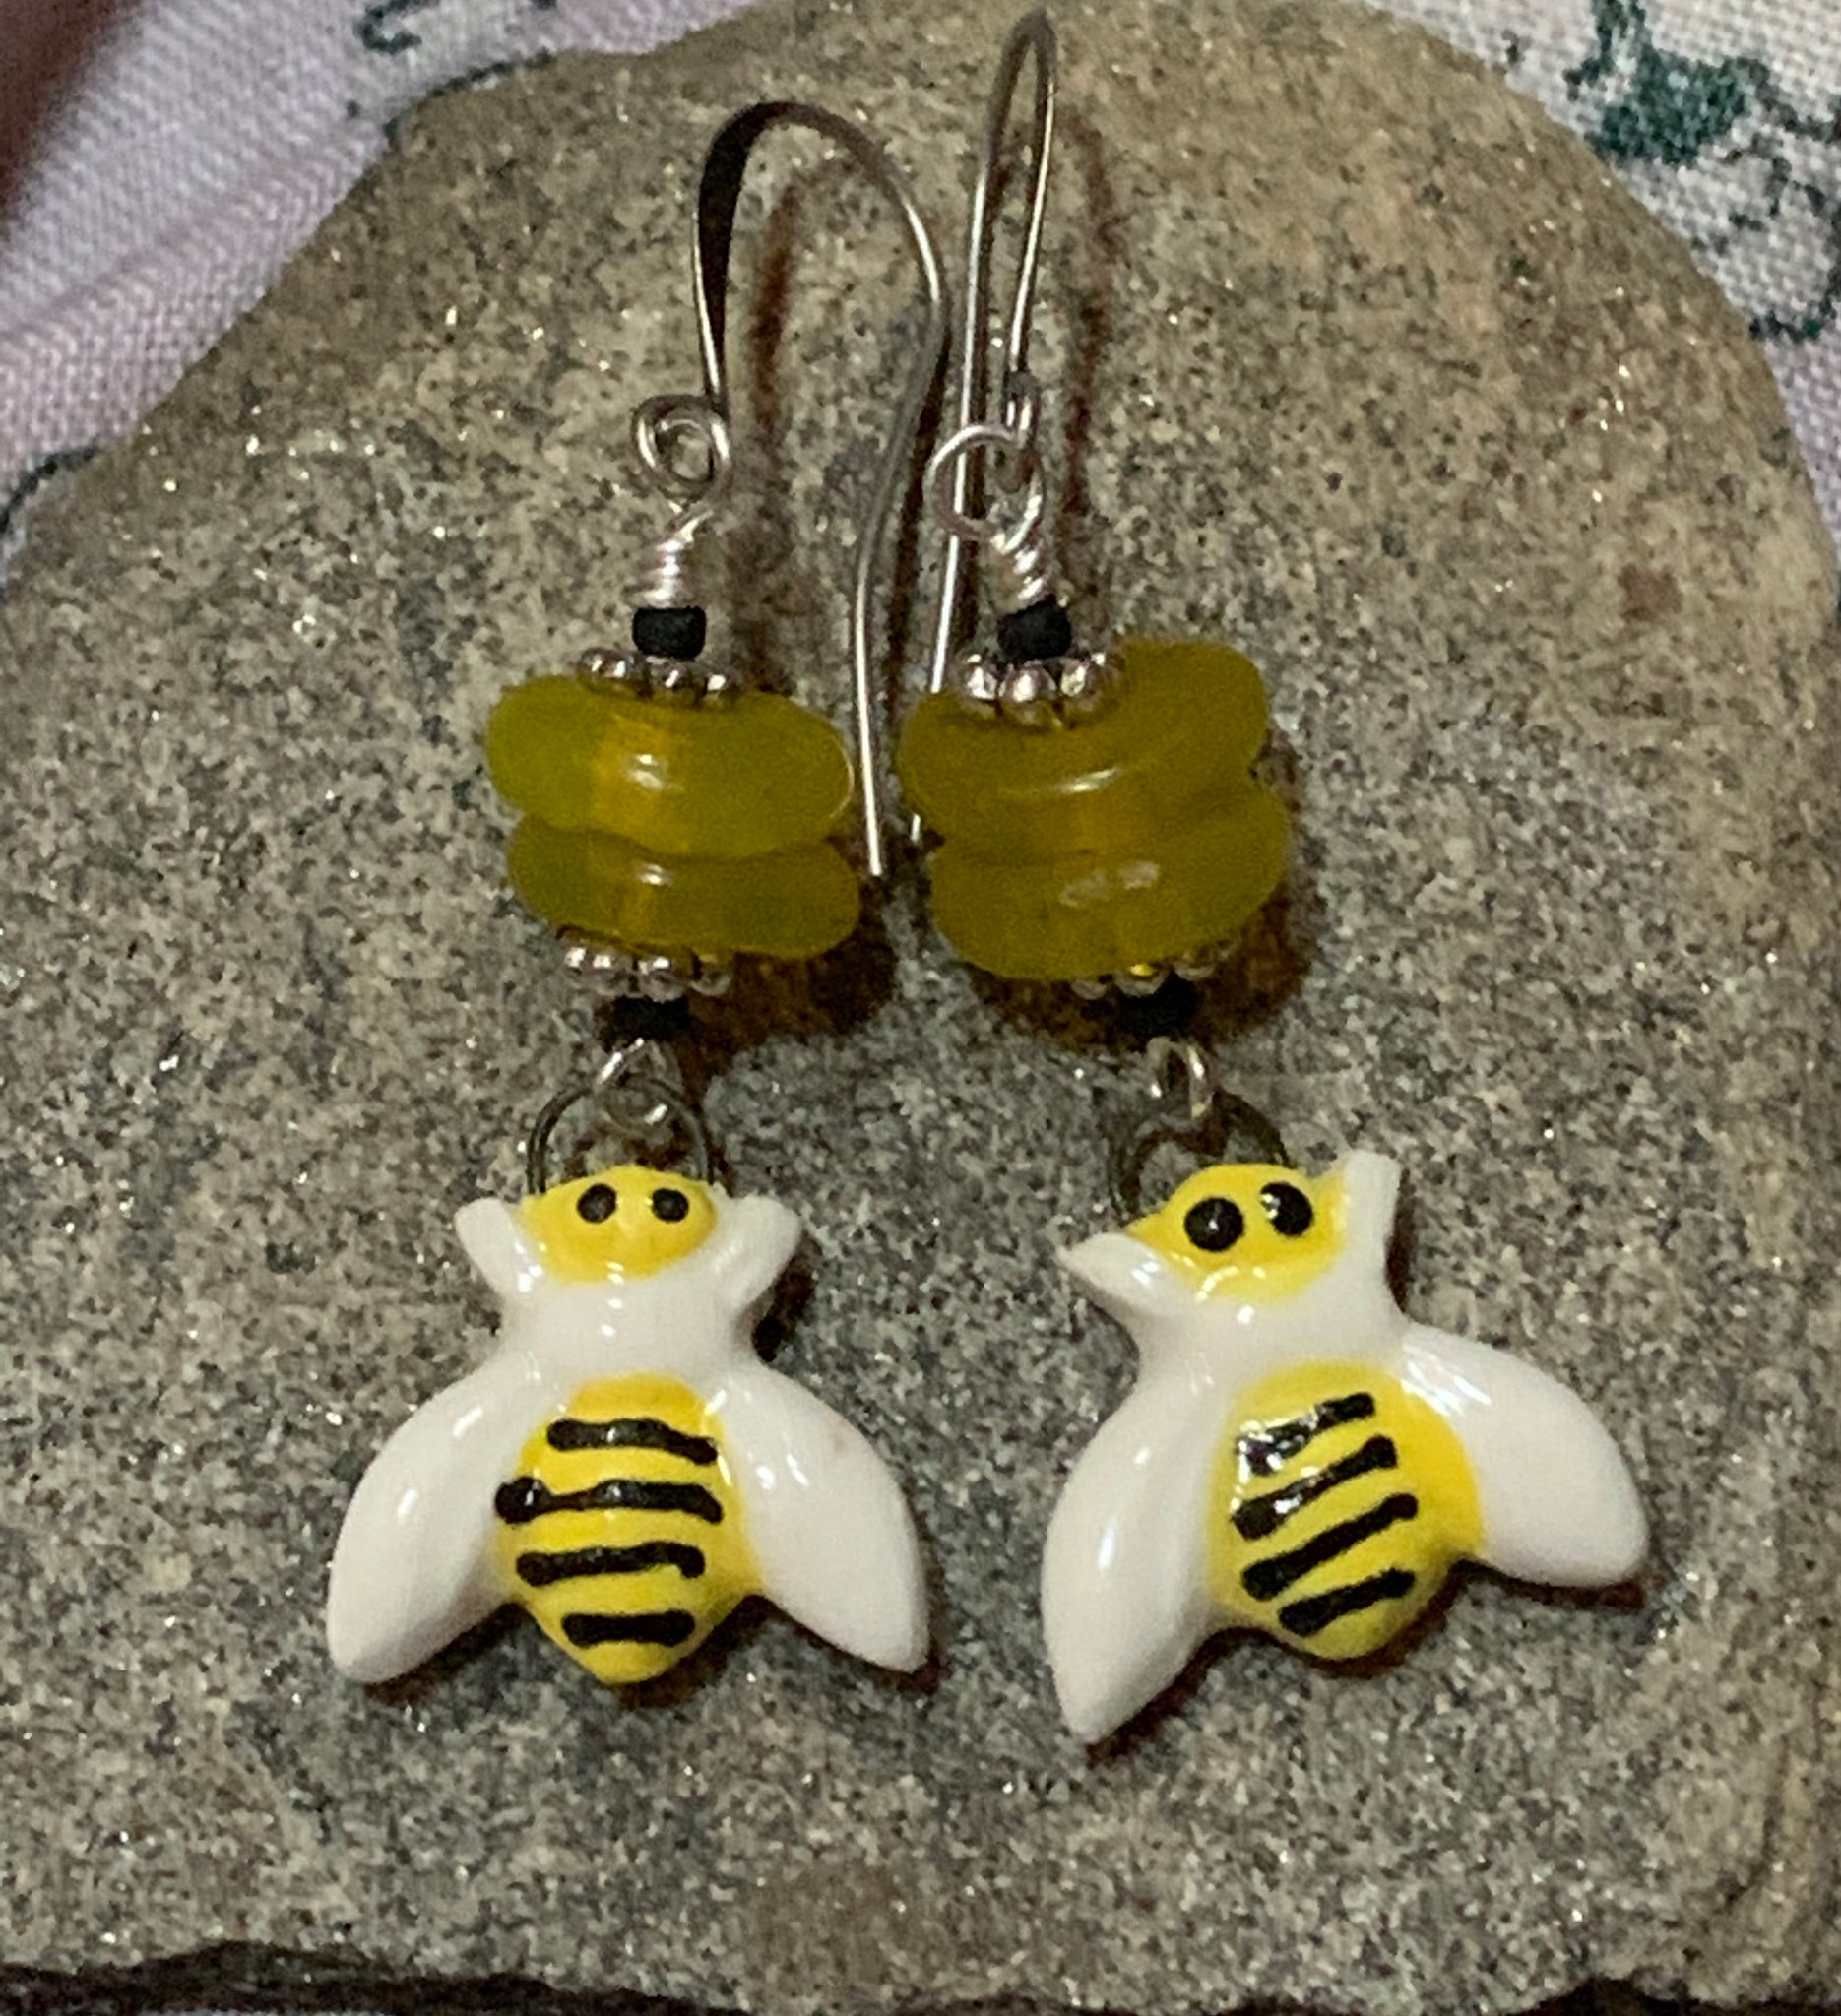 Ceramic bee handmade earrings